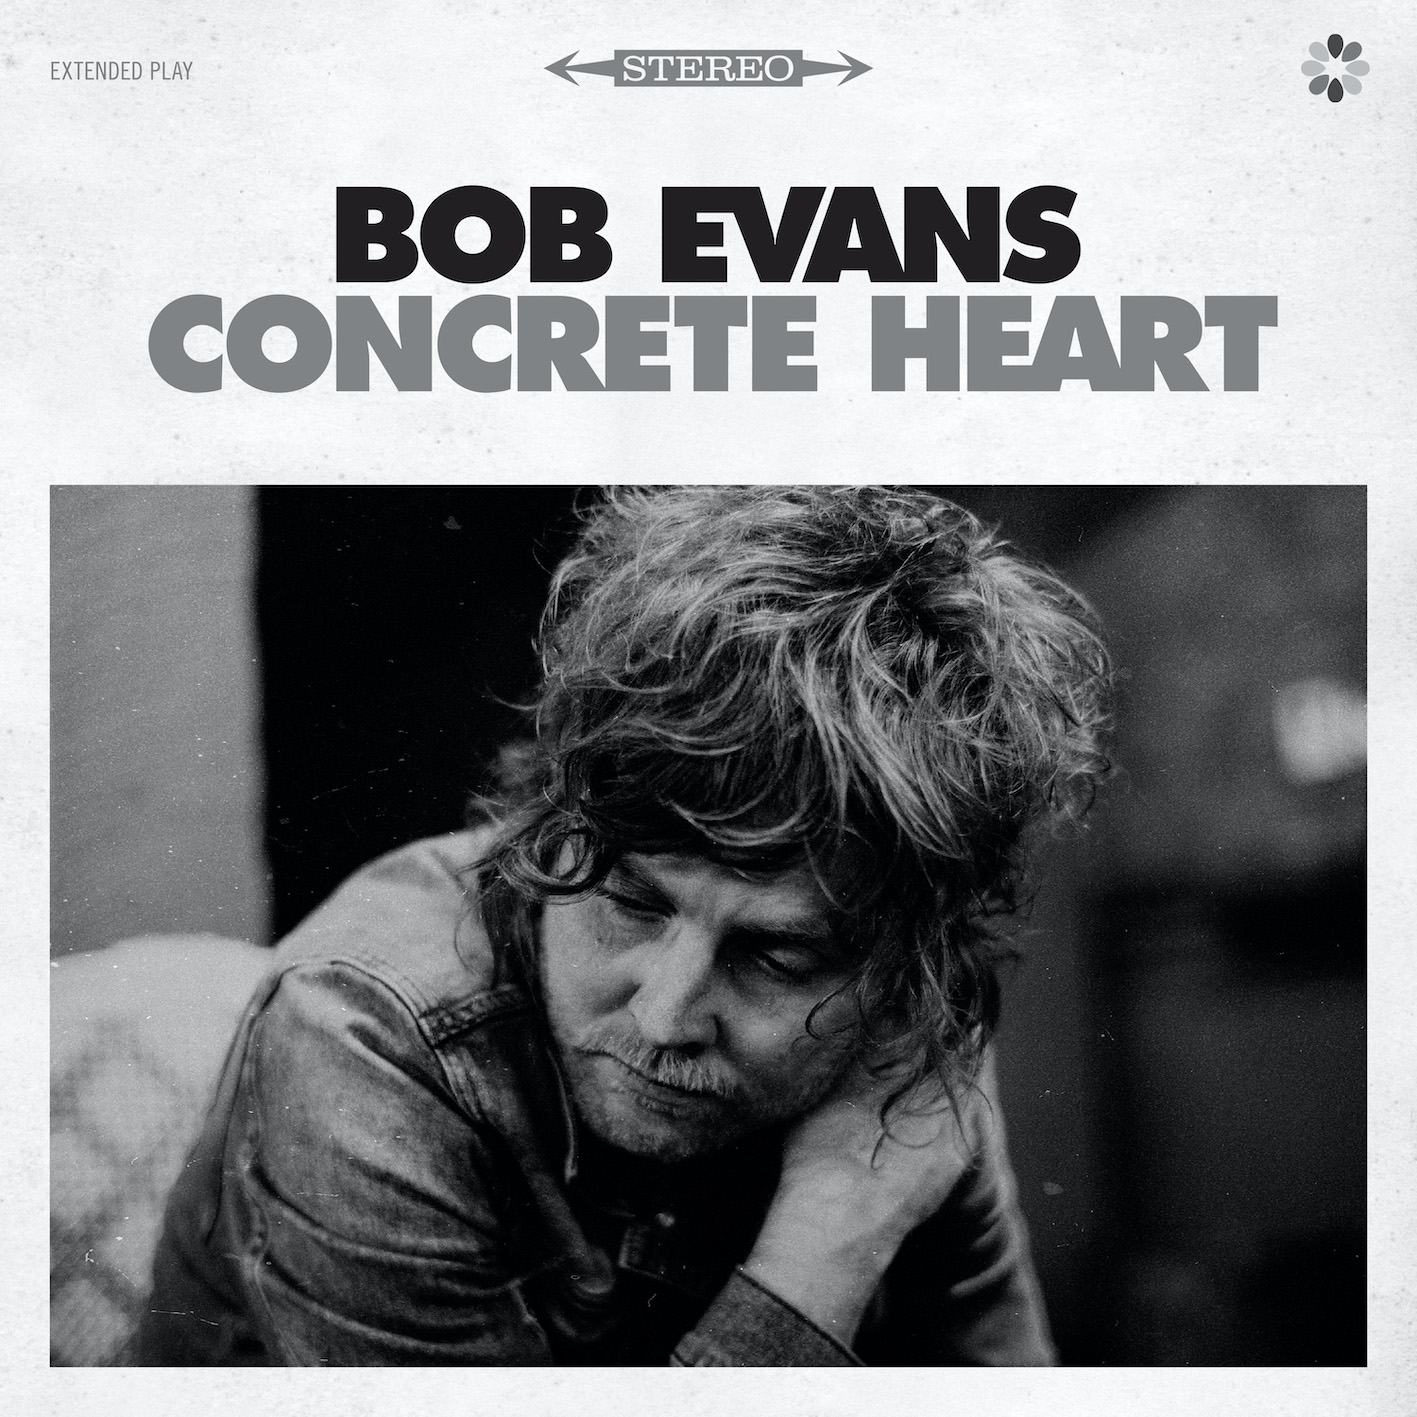 Bob Evans Announces New Single & Video Concrete Heart